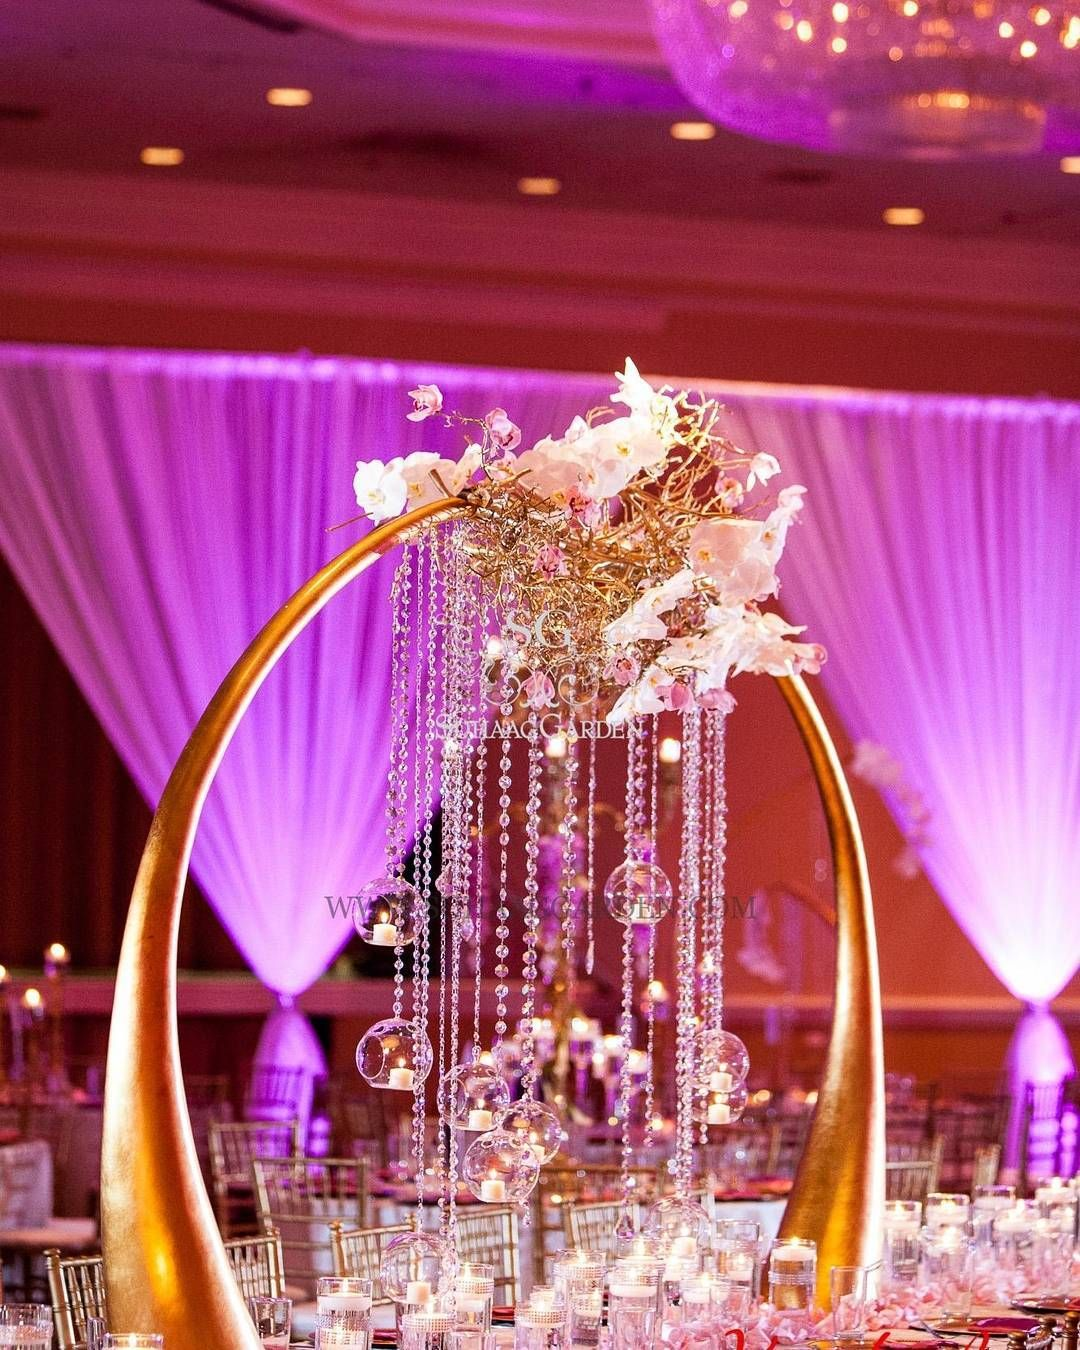 Absolutely gorg centerpiece! Love the #uplight lighting effect on ...